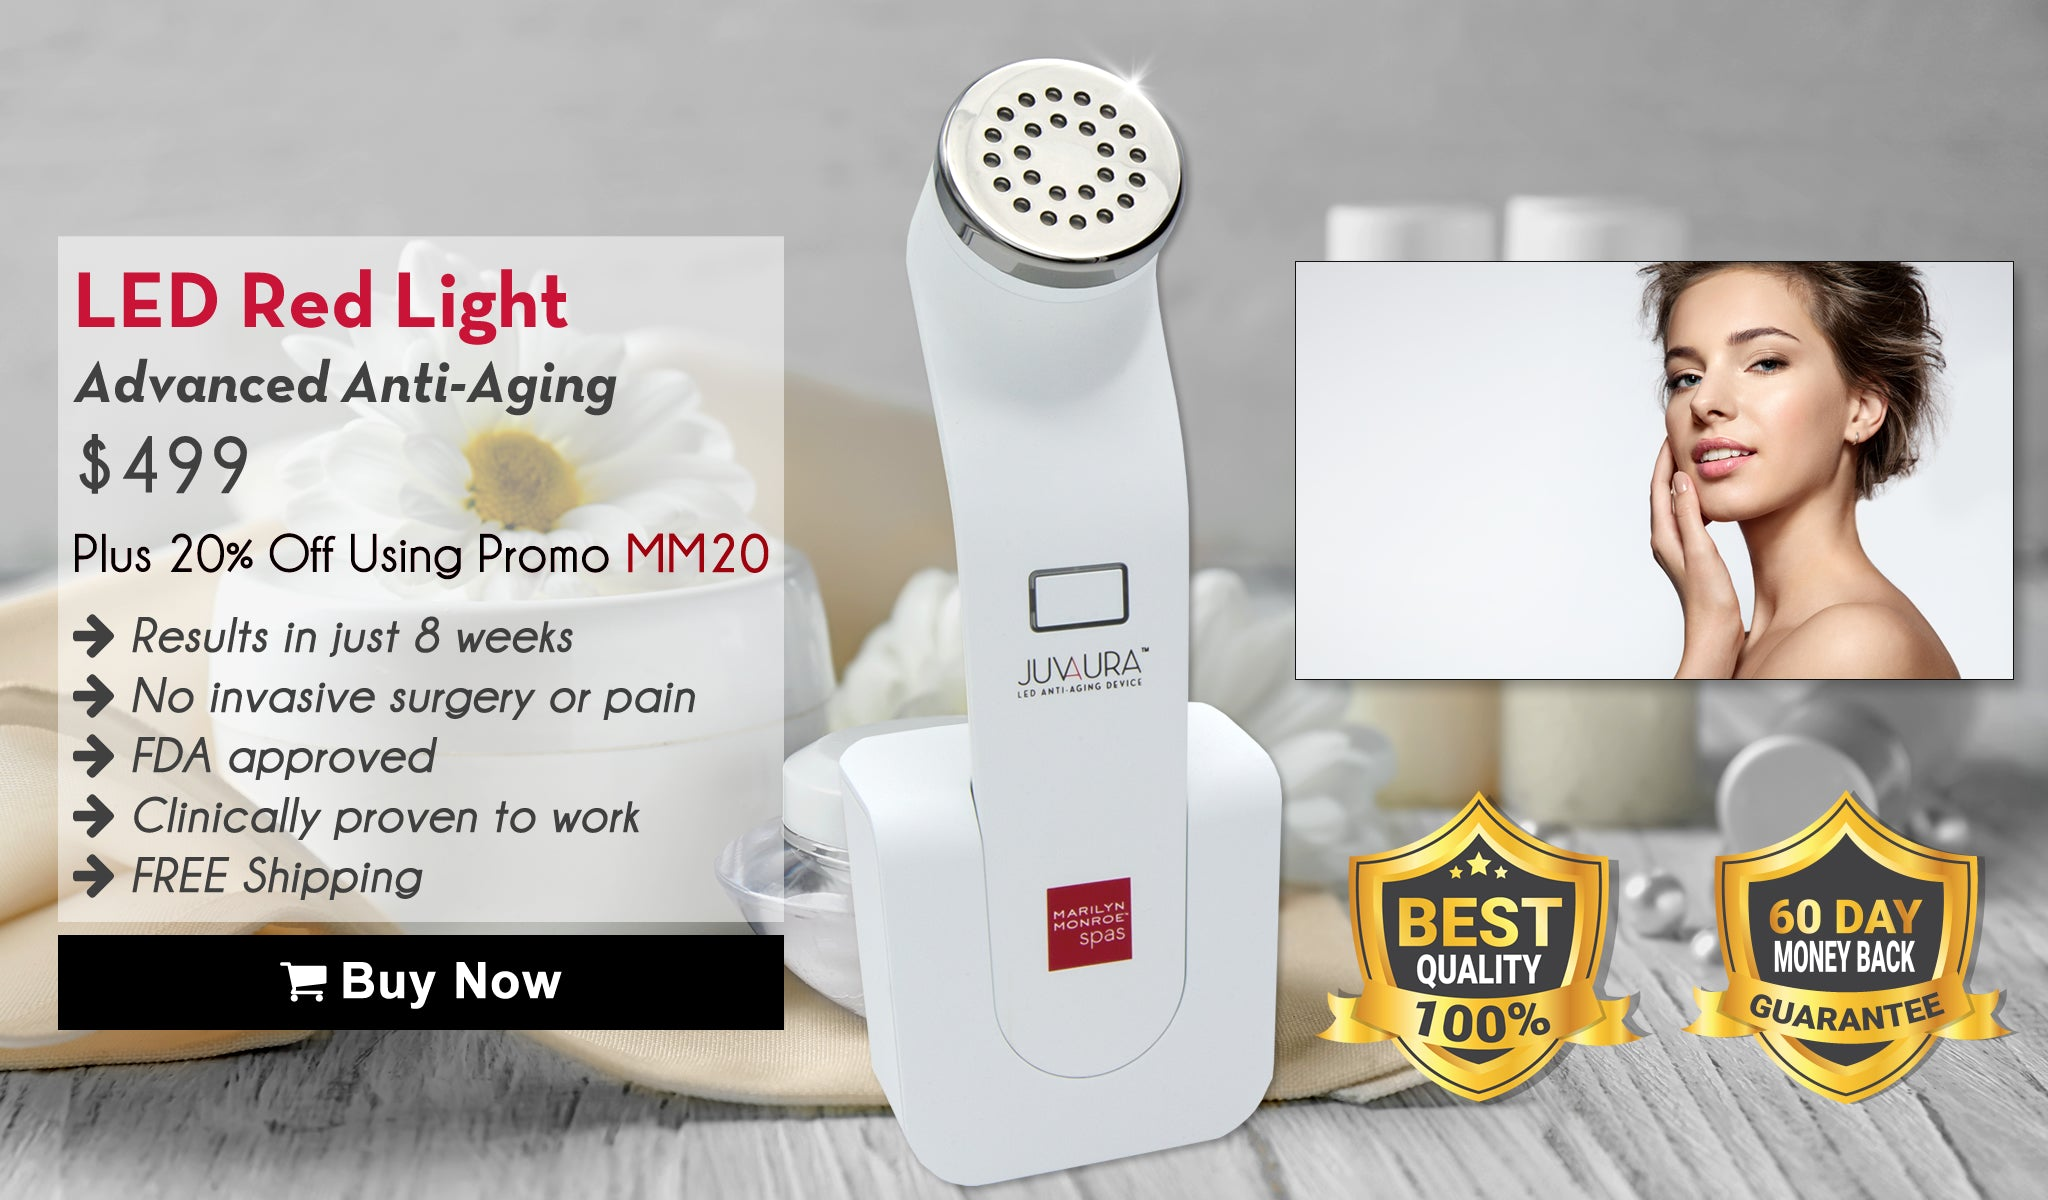 LED Red Light: Advanced Anti-Aging